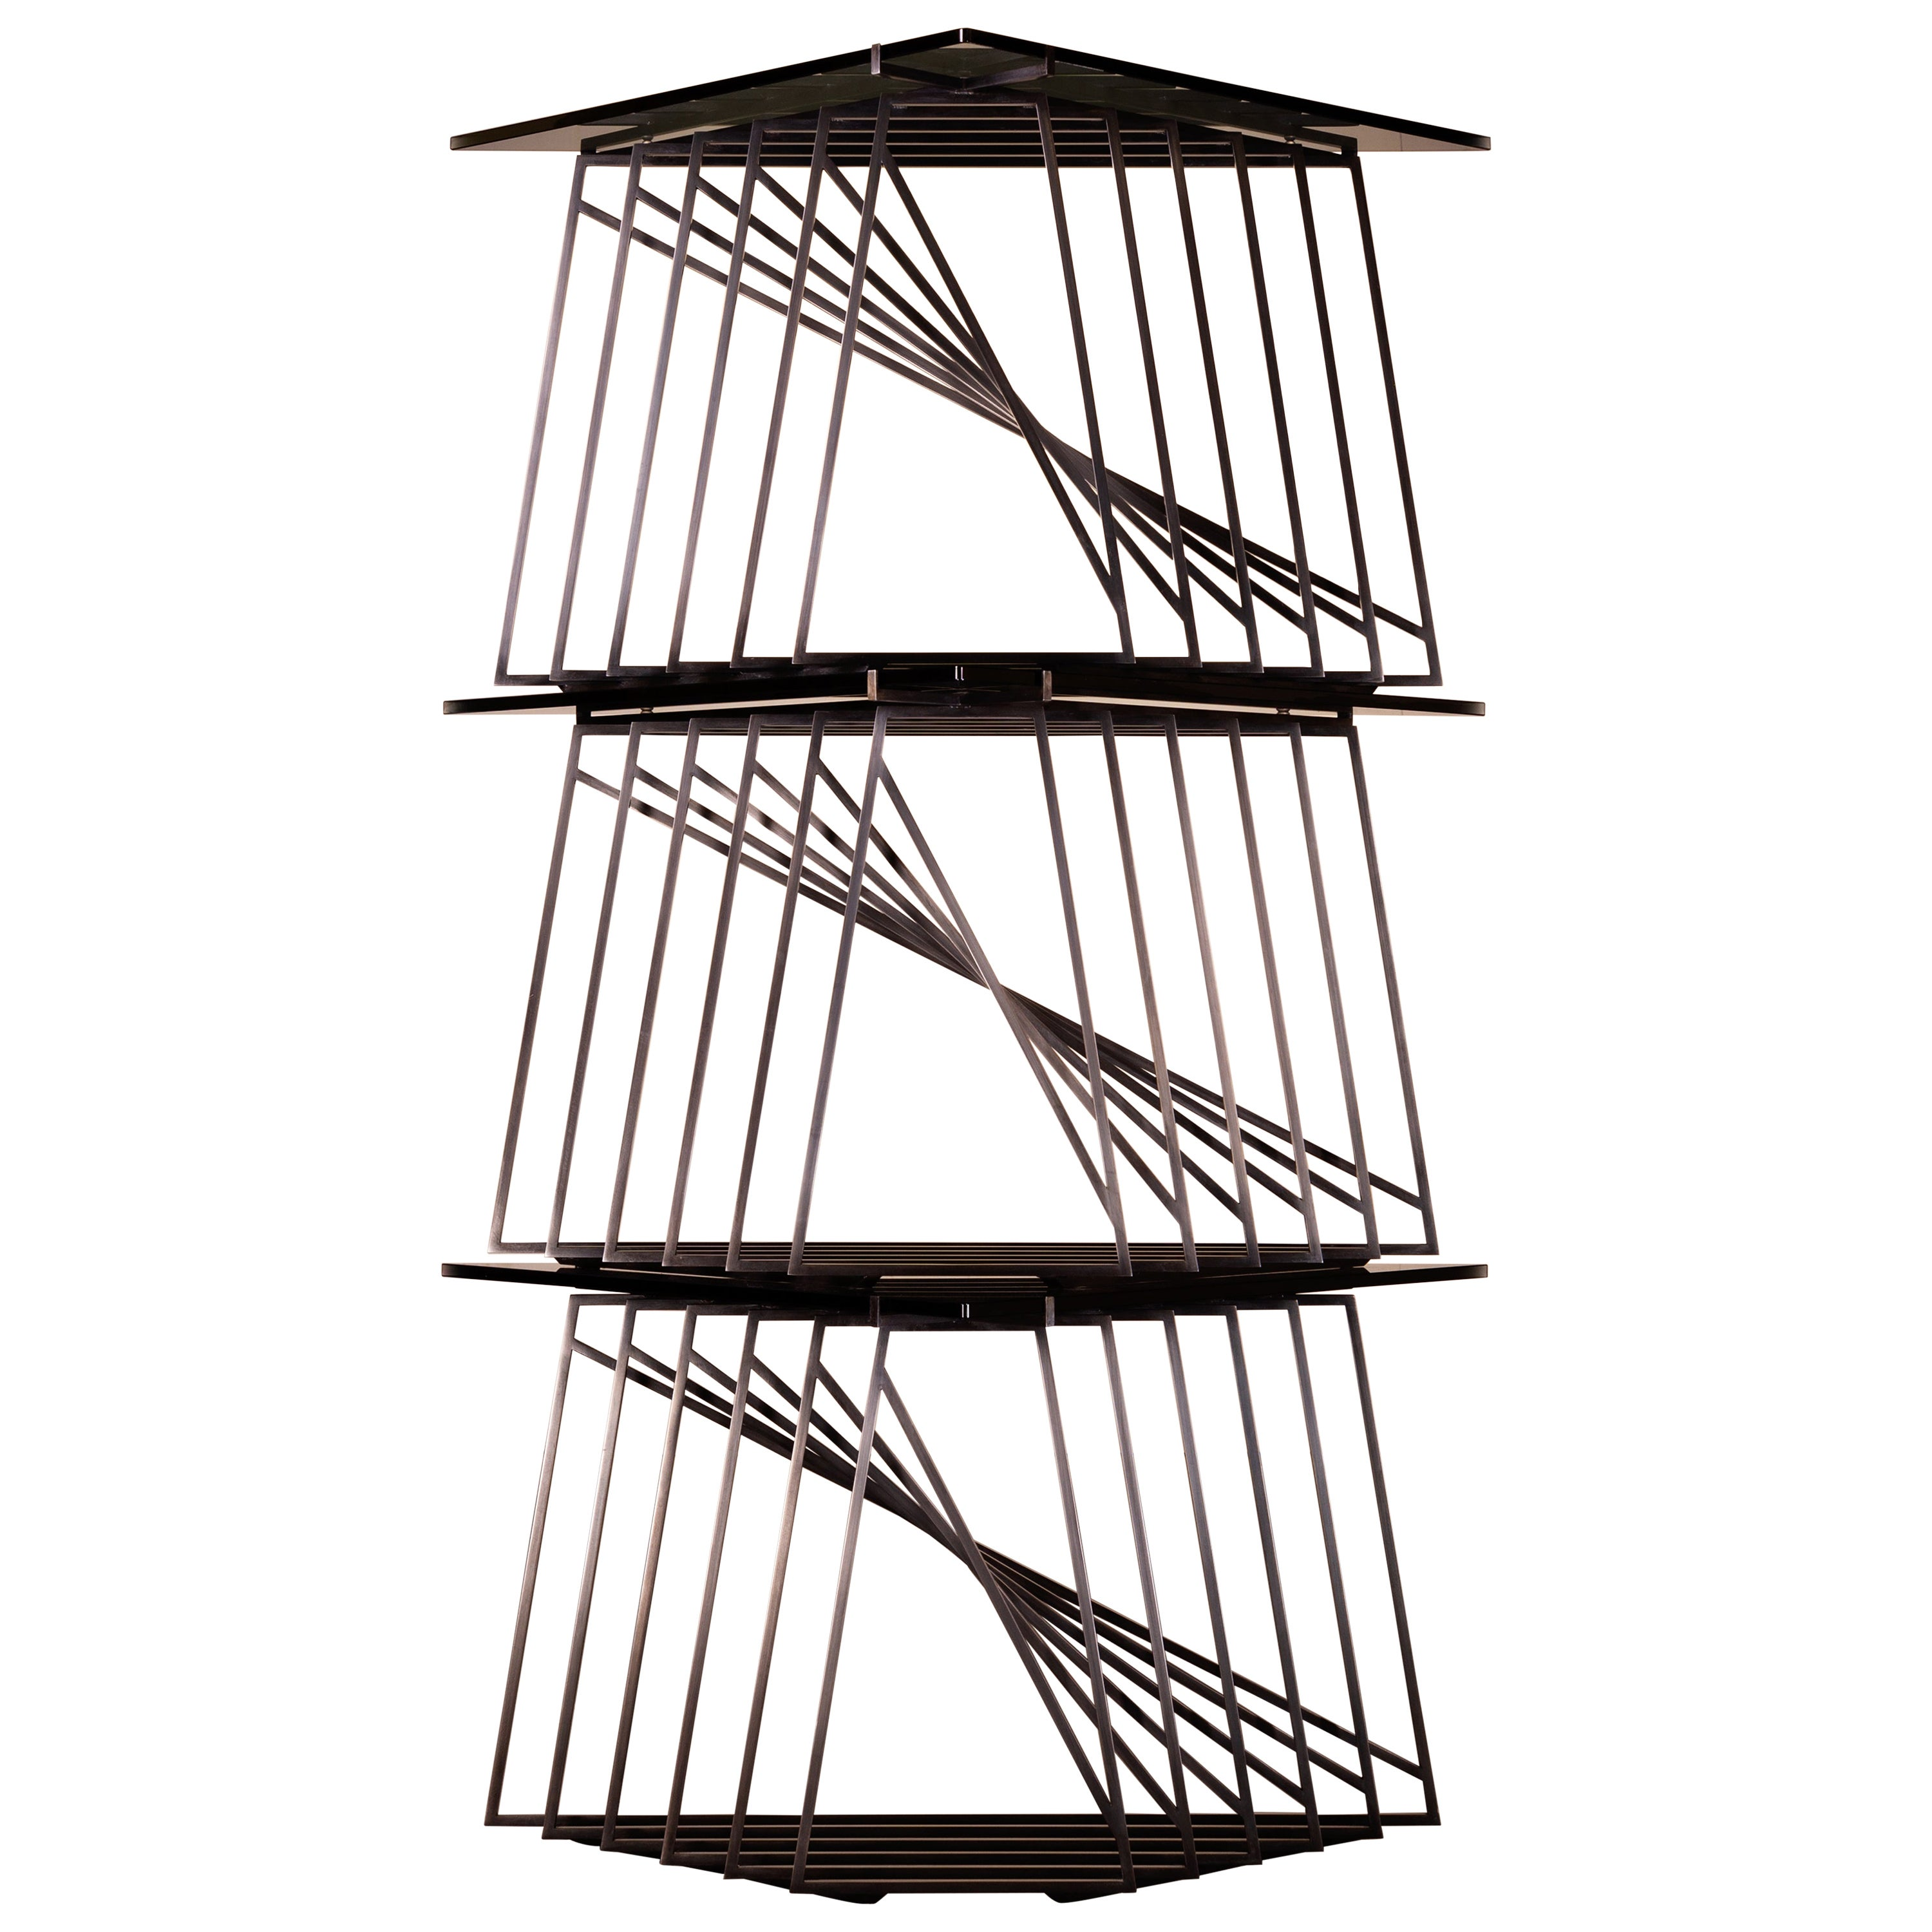 Modular Side Table Trio in Blackened Steel and Smoked Glass by Force/Collide